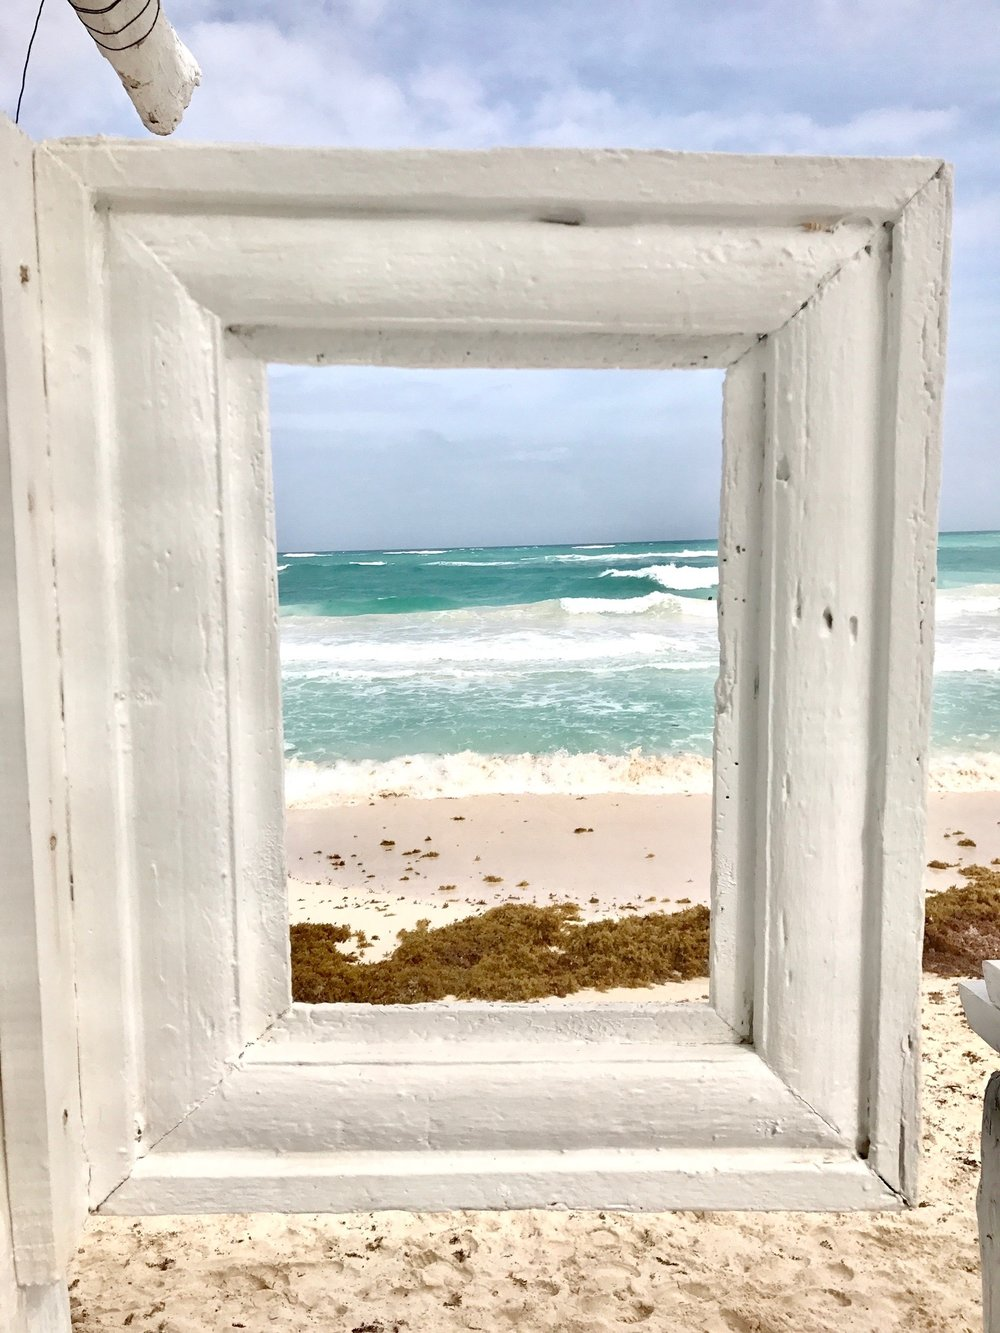 Tulum, Mexico Travel Guide - Hey guys! I'm SO excited to share my amazing experience in Tulum with y'all! If you haven't heard of or been to Tulum I highly recommend this beautiful jungle, beach escape for your next vacation. I'll be sharing some essentials that I brought, where we ate, my favorite beach clubs, where to take the best photos, what to wear, how to deal with your beach hair and what to do while you're there!CLICK HERE TO READ MORE....